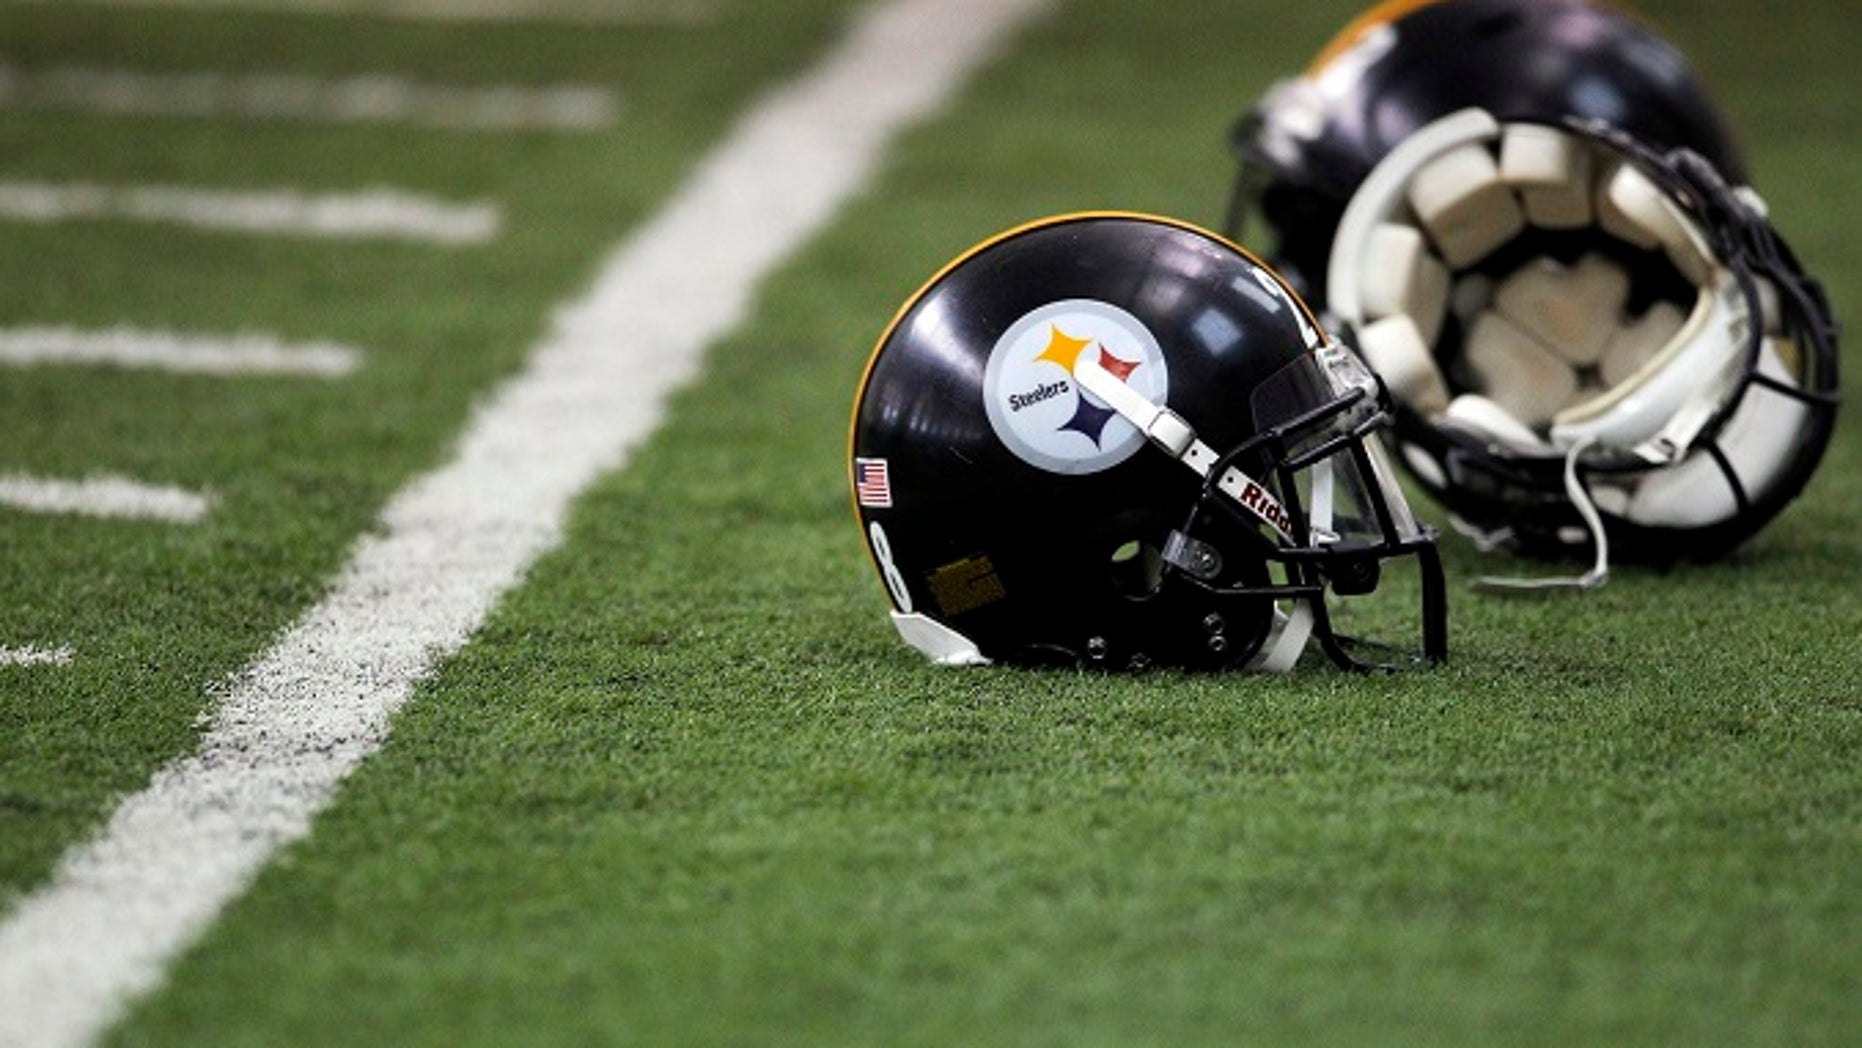 A Texas man who allegedly threatened to stage an attack at Heinz Field during an NFL playoff game has reportedly been arrested.